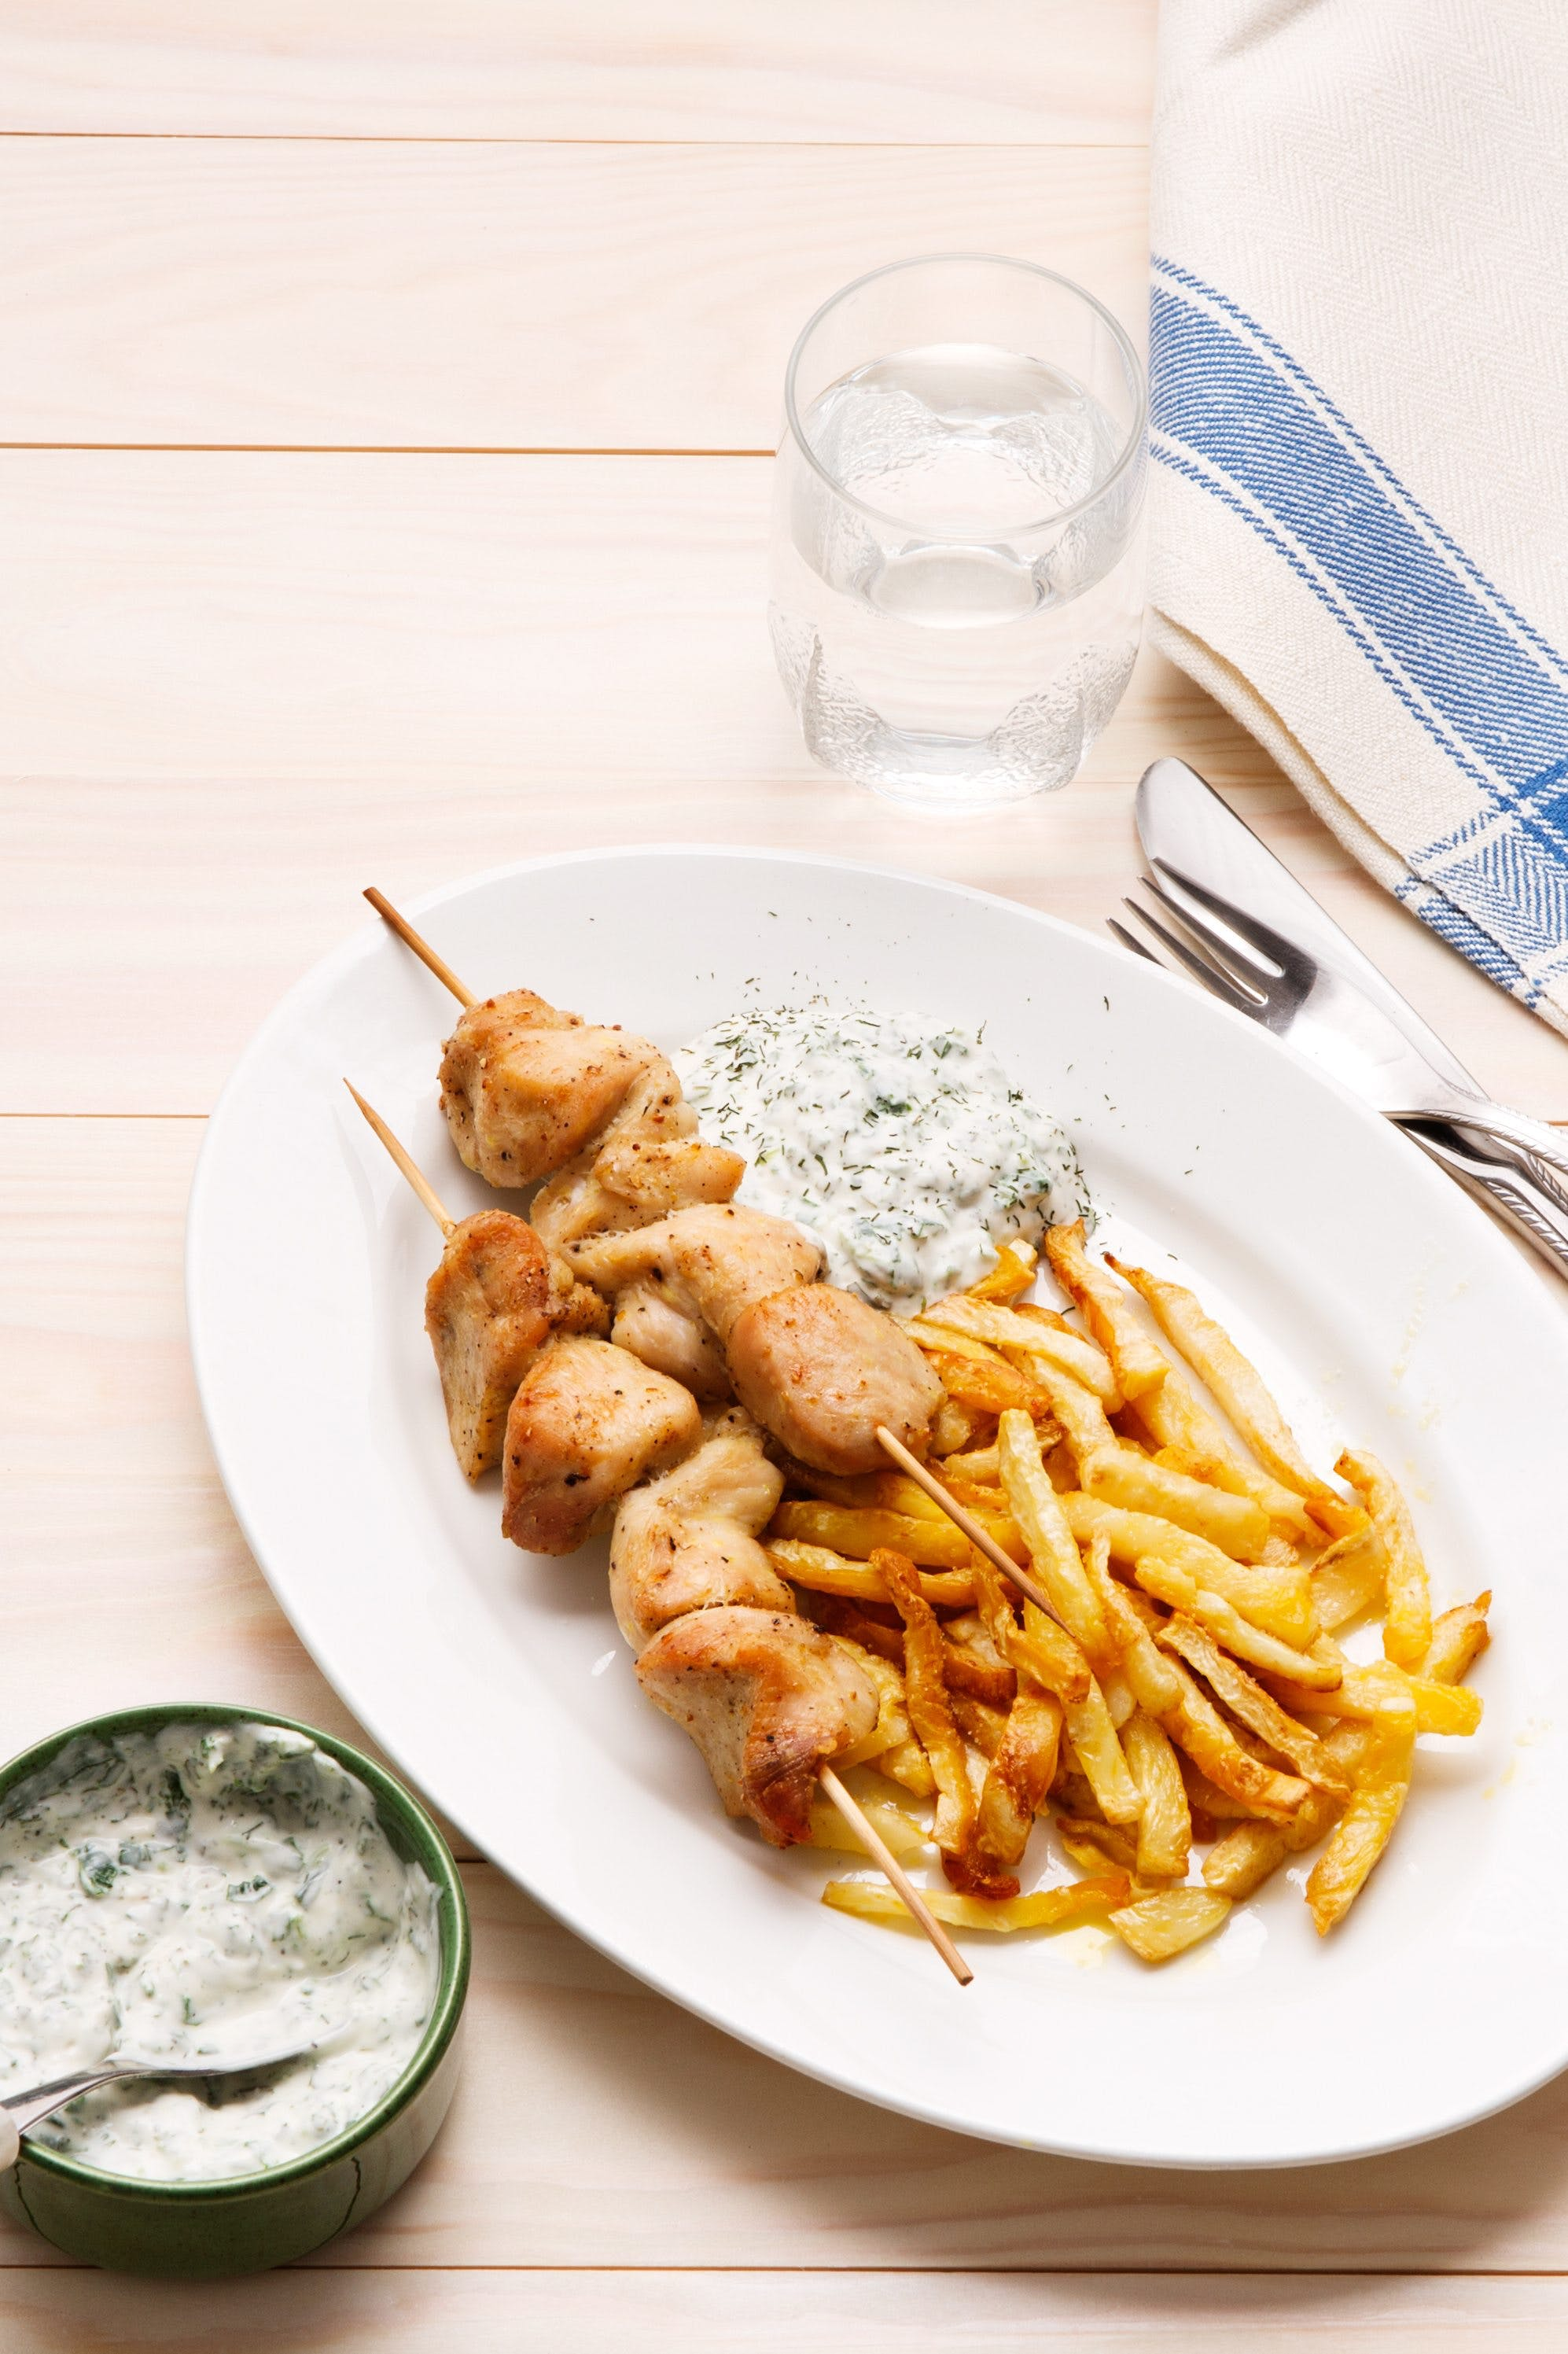 Keto chicken skewers with fries and dip